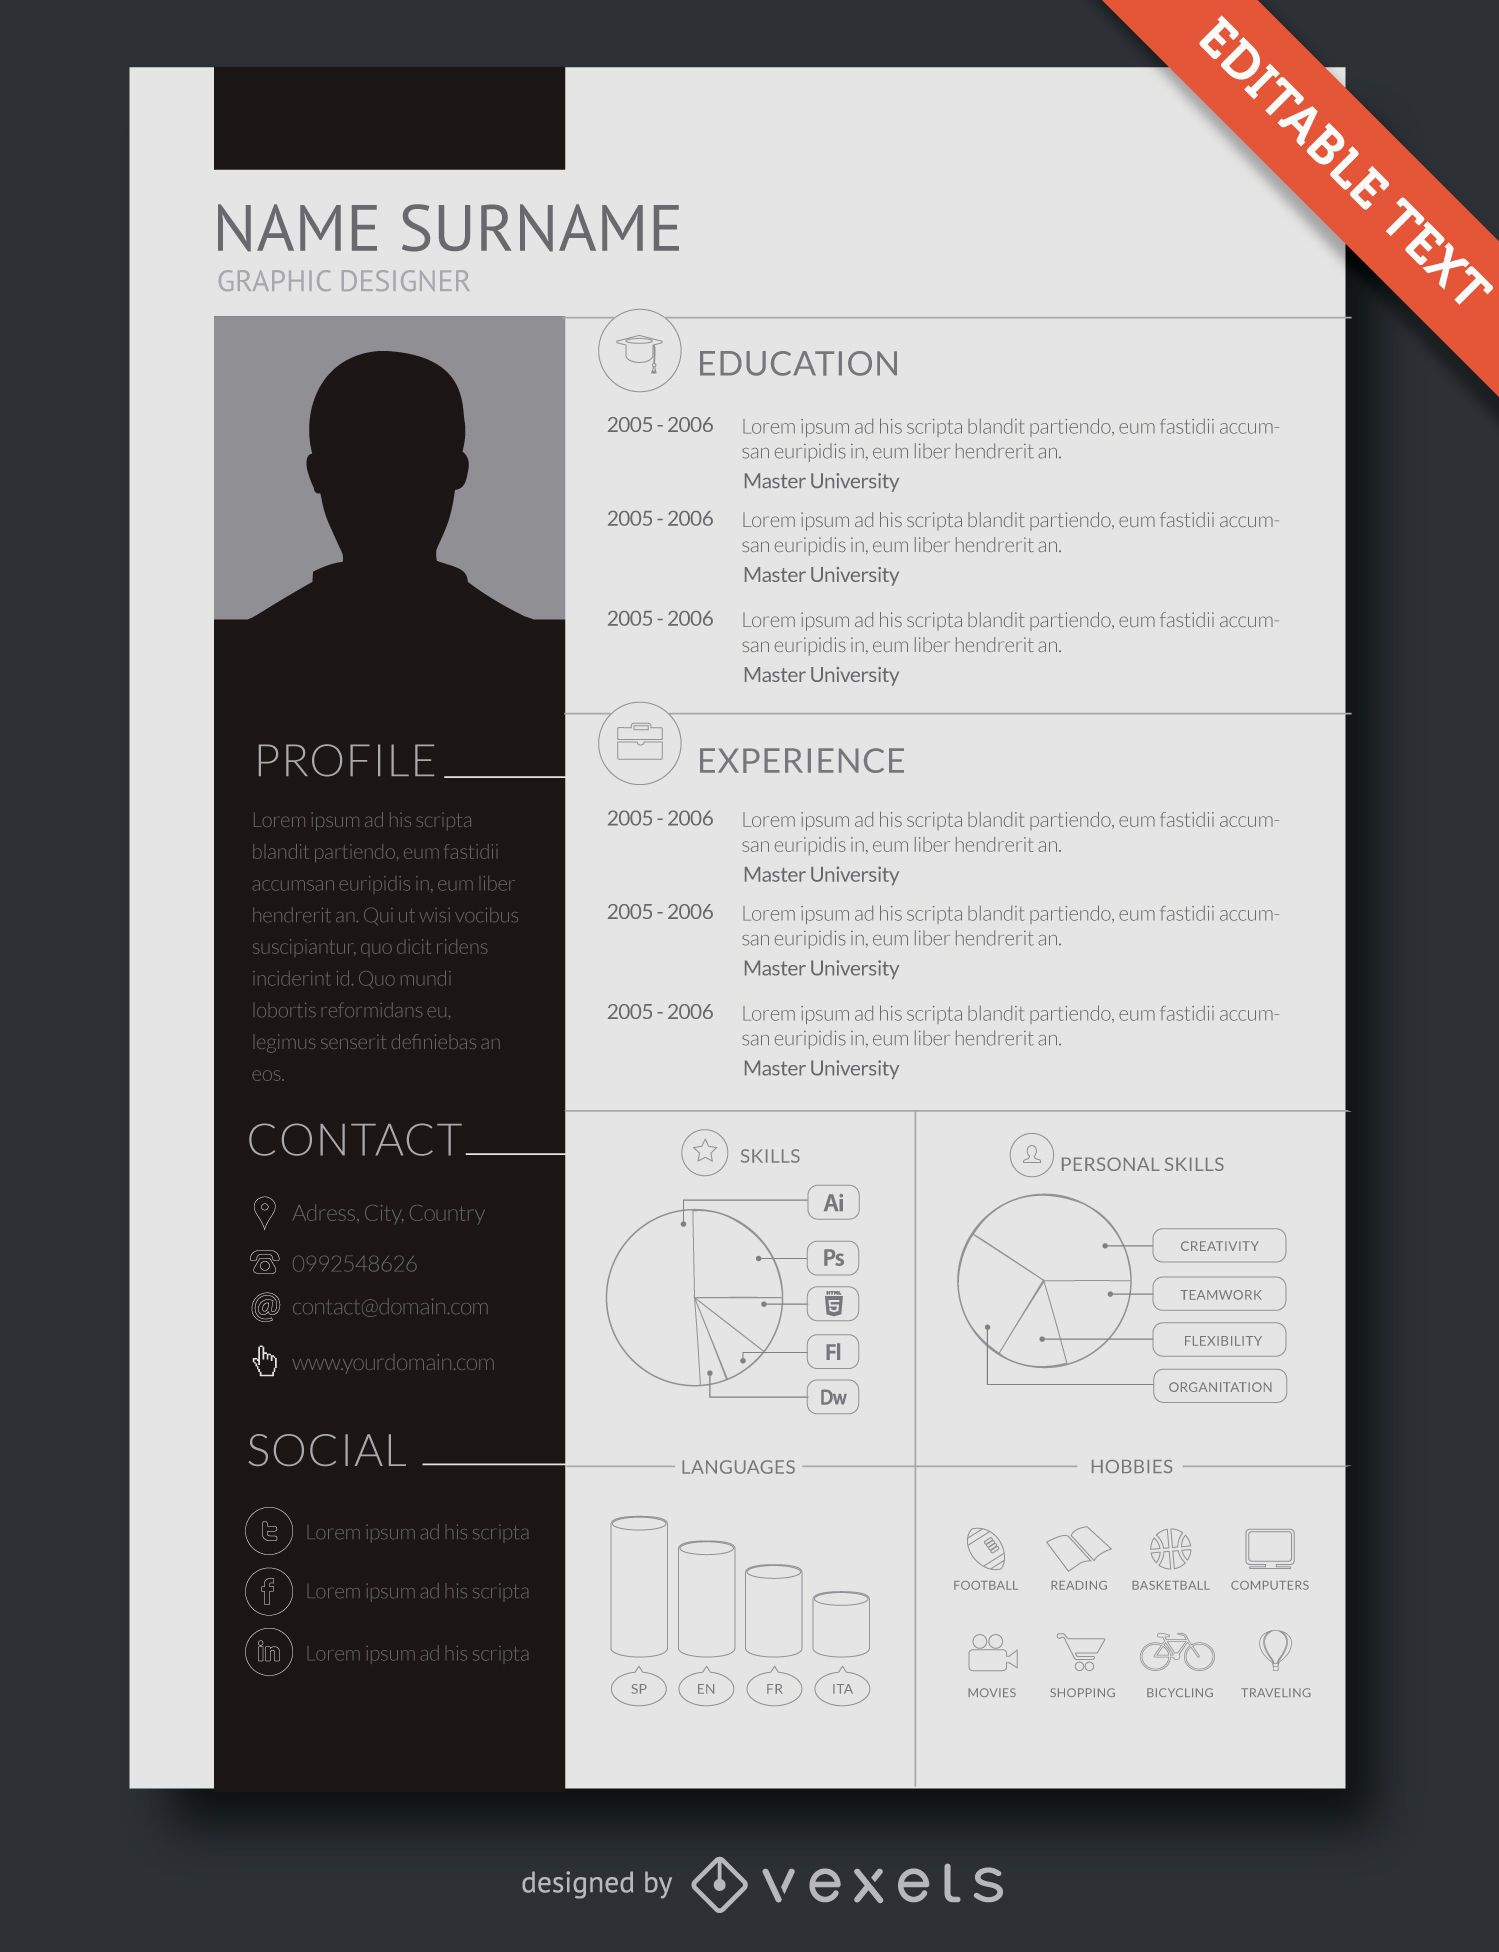 flat design resume template download large image 683x888px license image user - Awesome Resume Templates Free